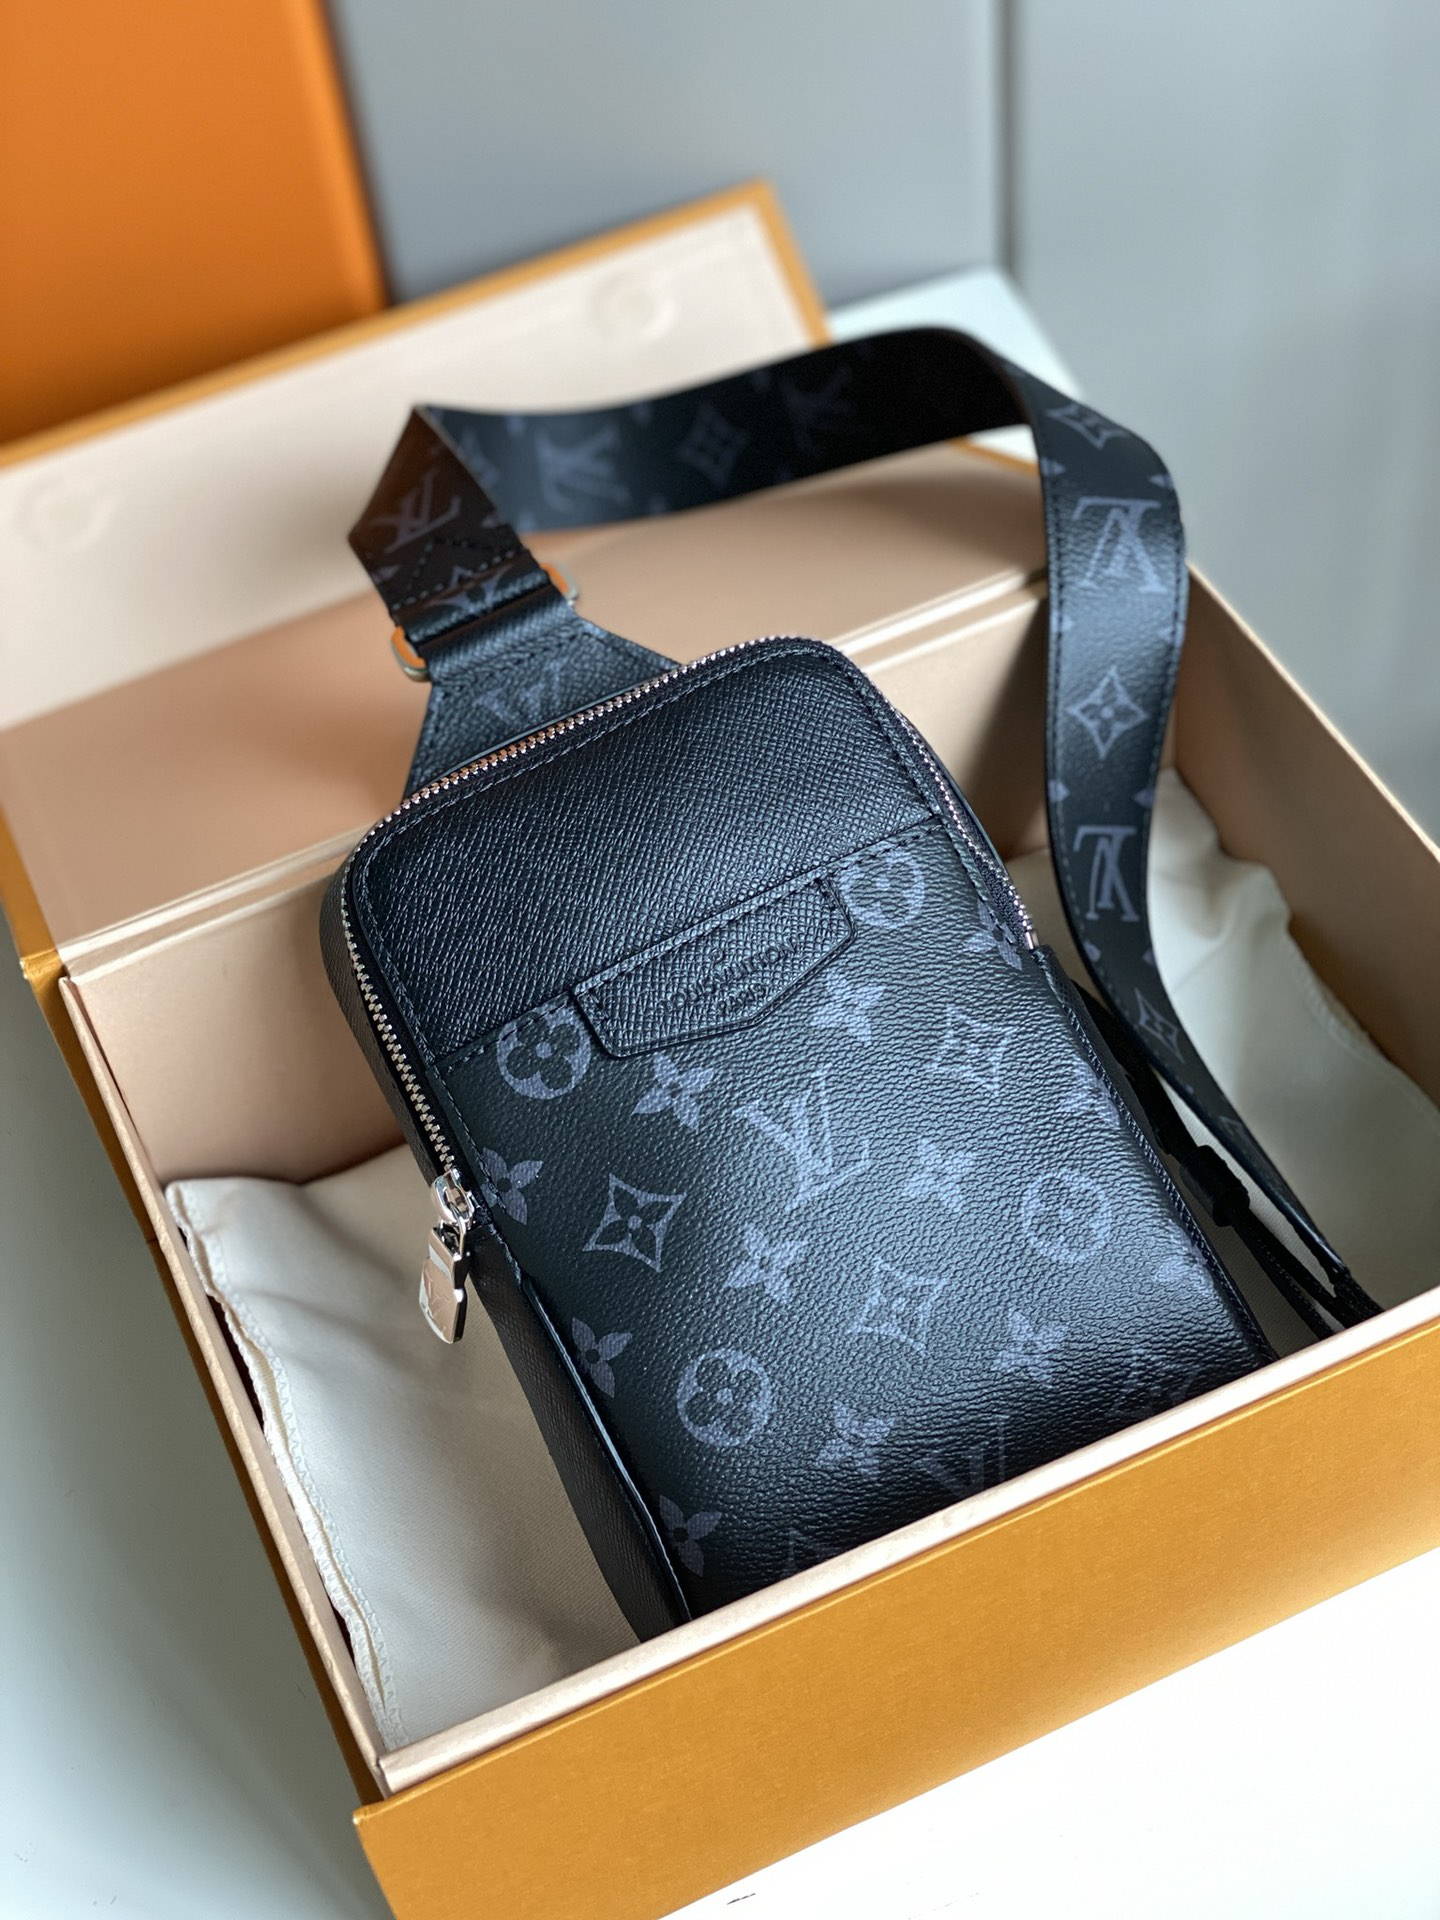 Replica Louis Vuitton M30741 Men Outdoor Sling Bag Coated Canvas and Cowhide Leather